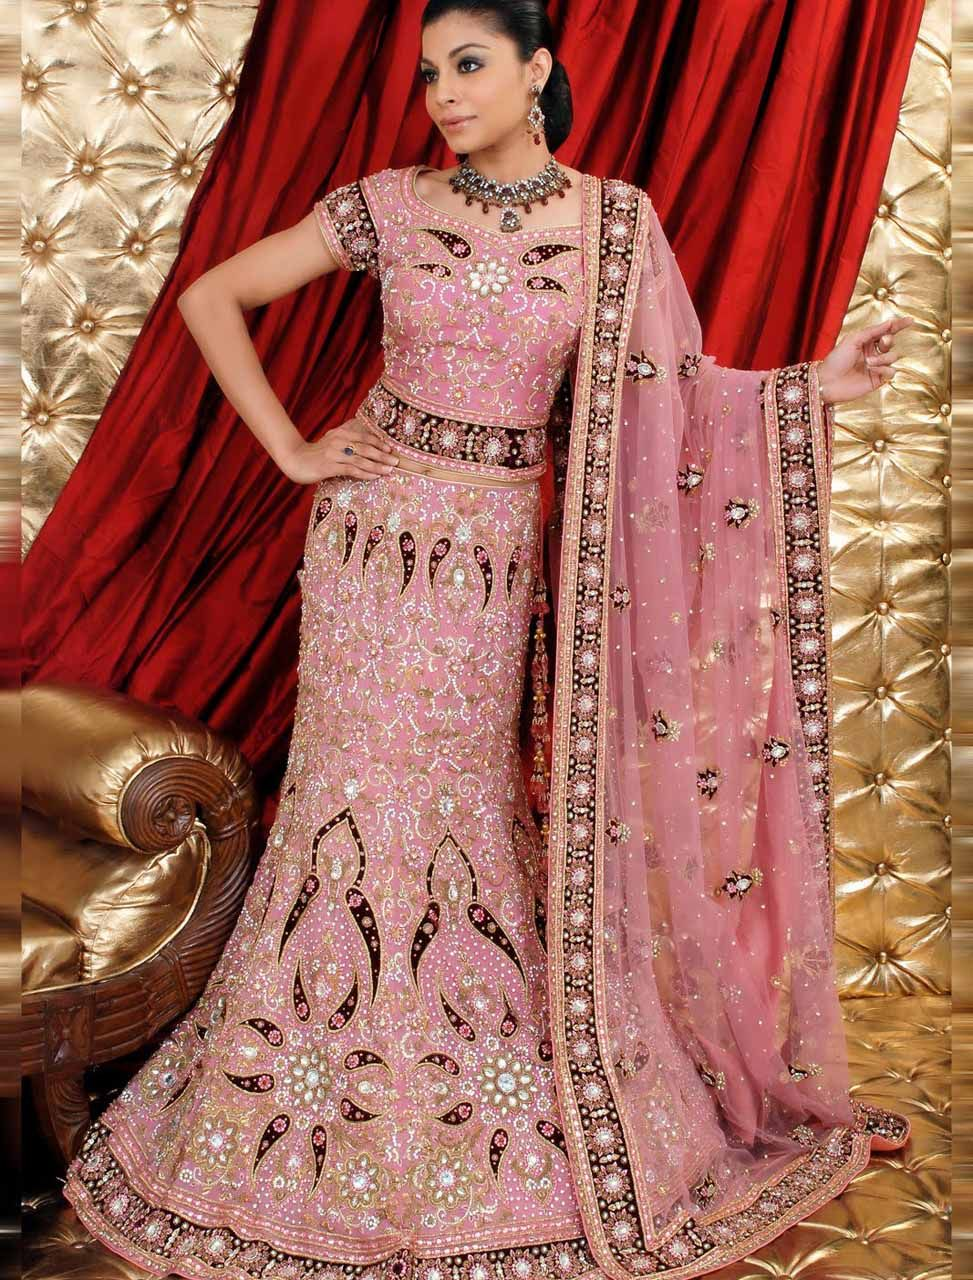 Very ornate pink, short-sleeved lehenga choli, with black accents ...